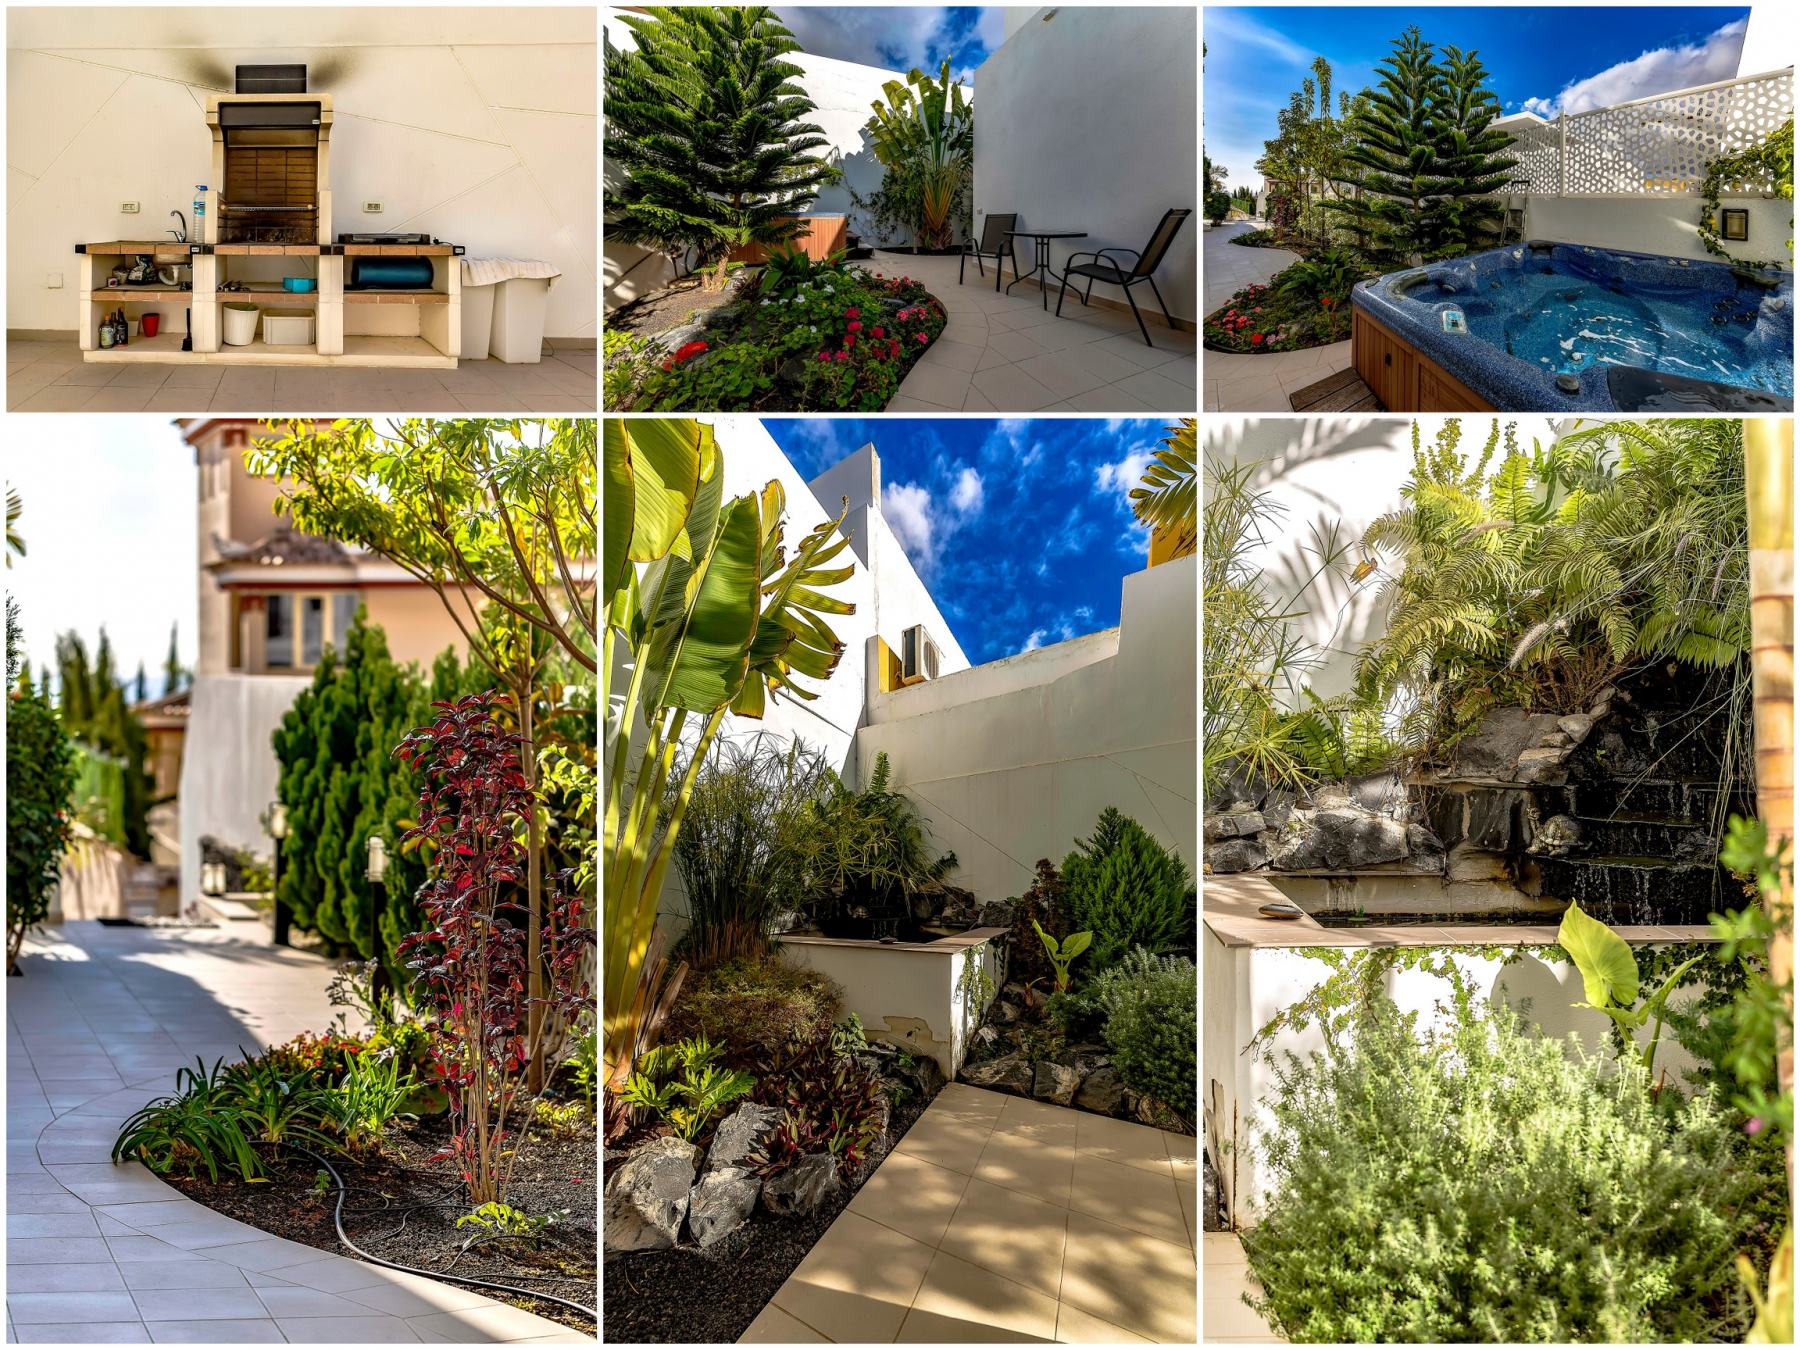 Properties for Sale in Tenerife, Canary Islands, Spain   SylkWayStar Real Estate. Luxury villa in the fashionable area of the south of the island of Tenerife – Madroñal.. Image-22854